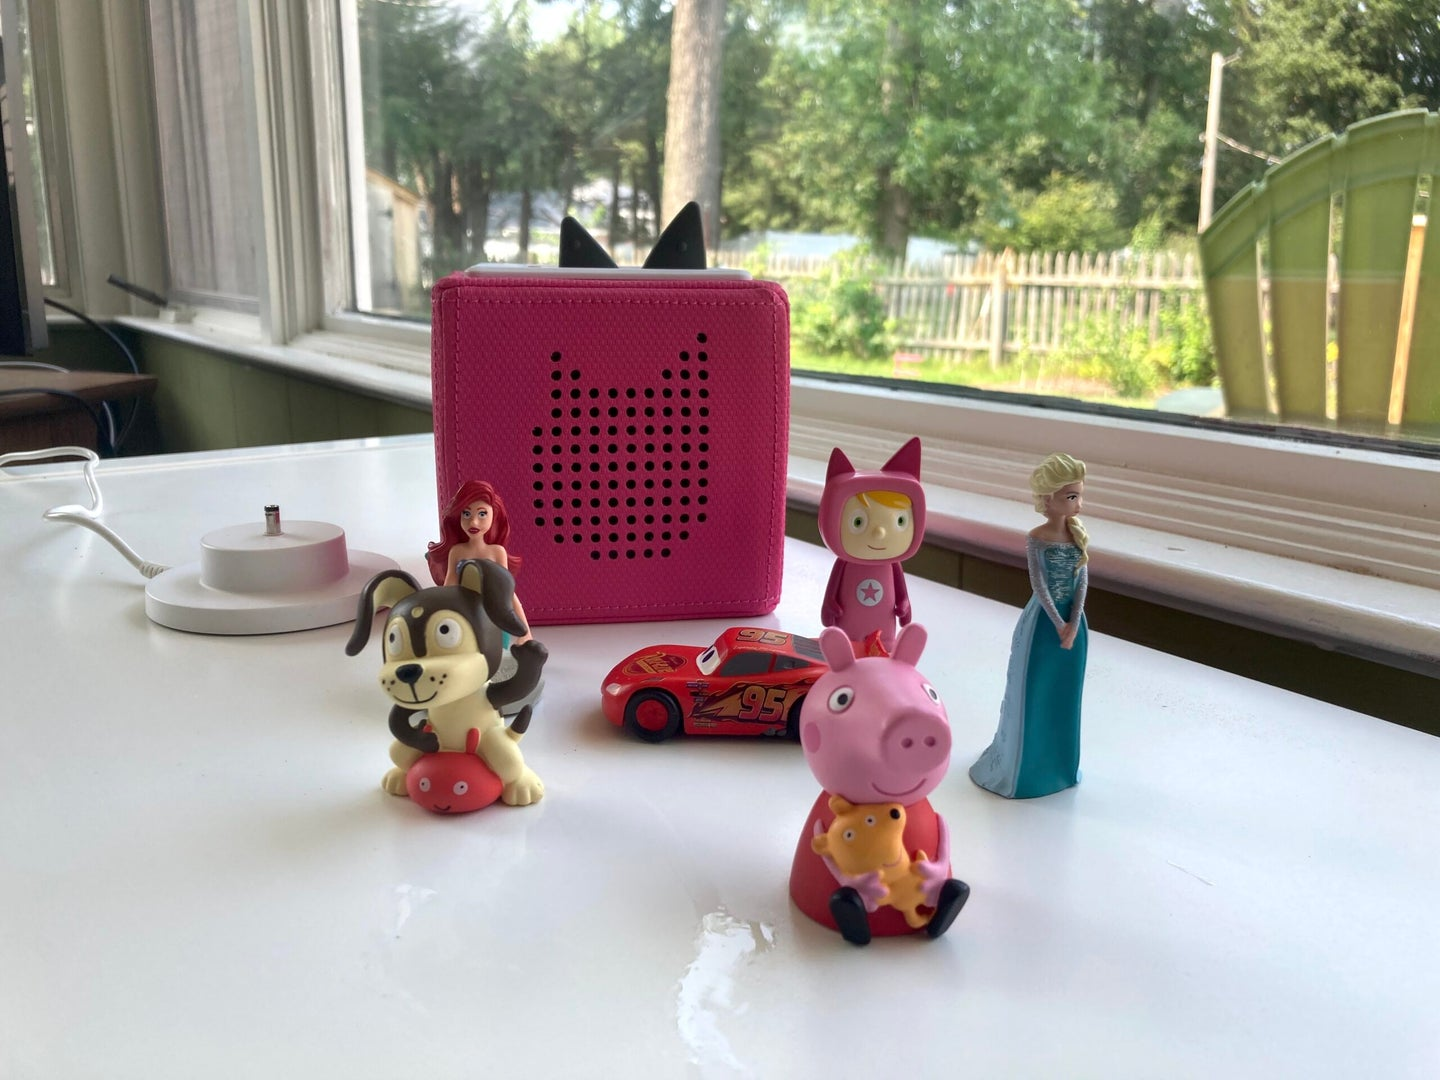 toniebox with a selection of figures